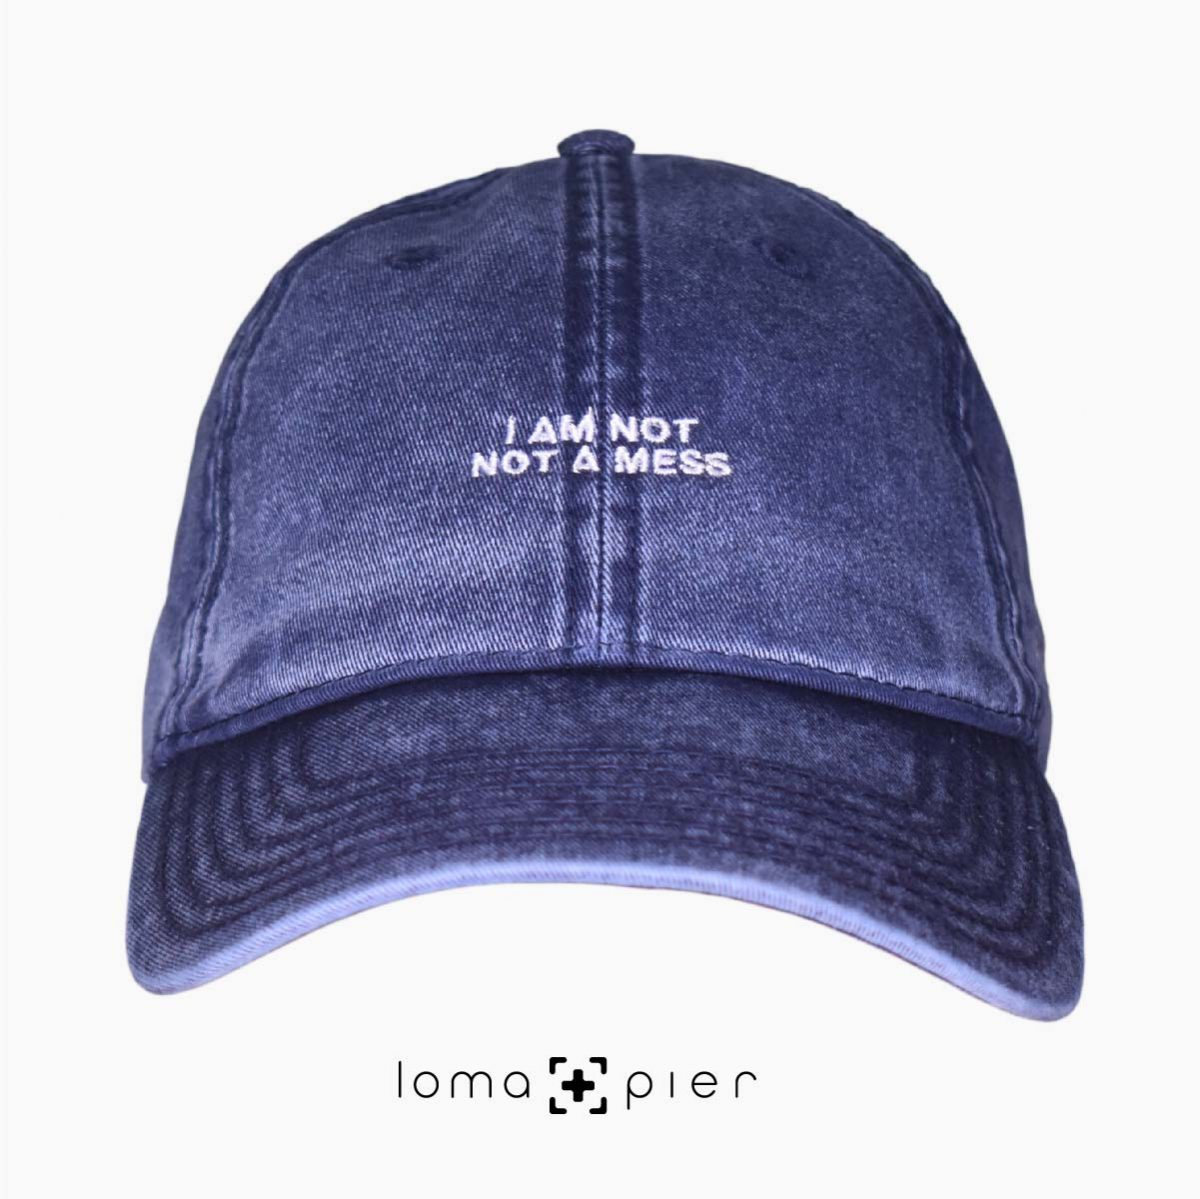 I AM NOT NOT A MESS vintage dad hat at the loma+pier hat store